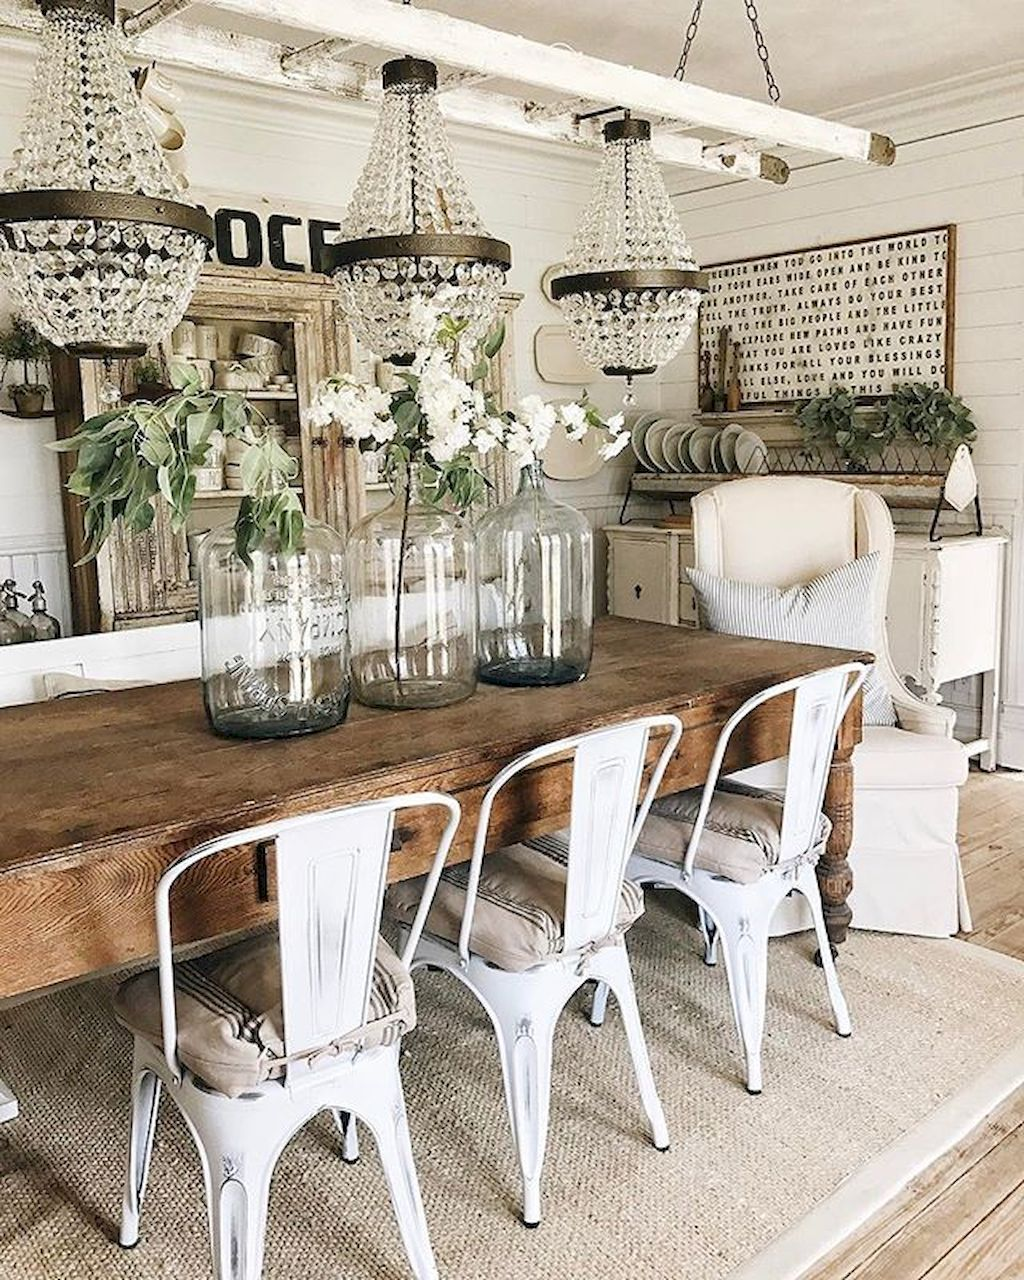 Rustic Dining Room Decor: 50 Modern Farmhouse Dining Room Decor Ideas